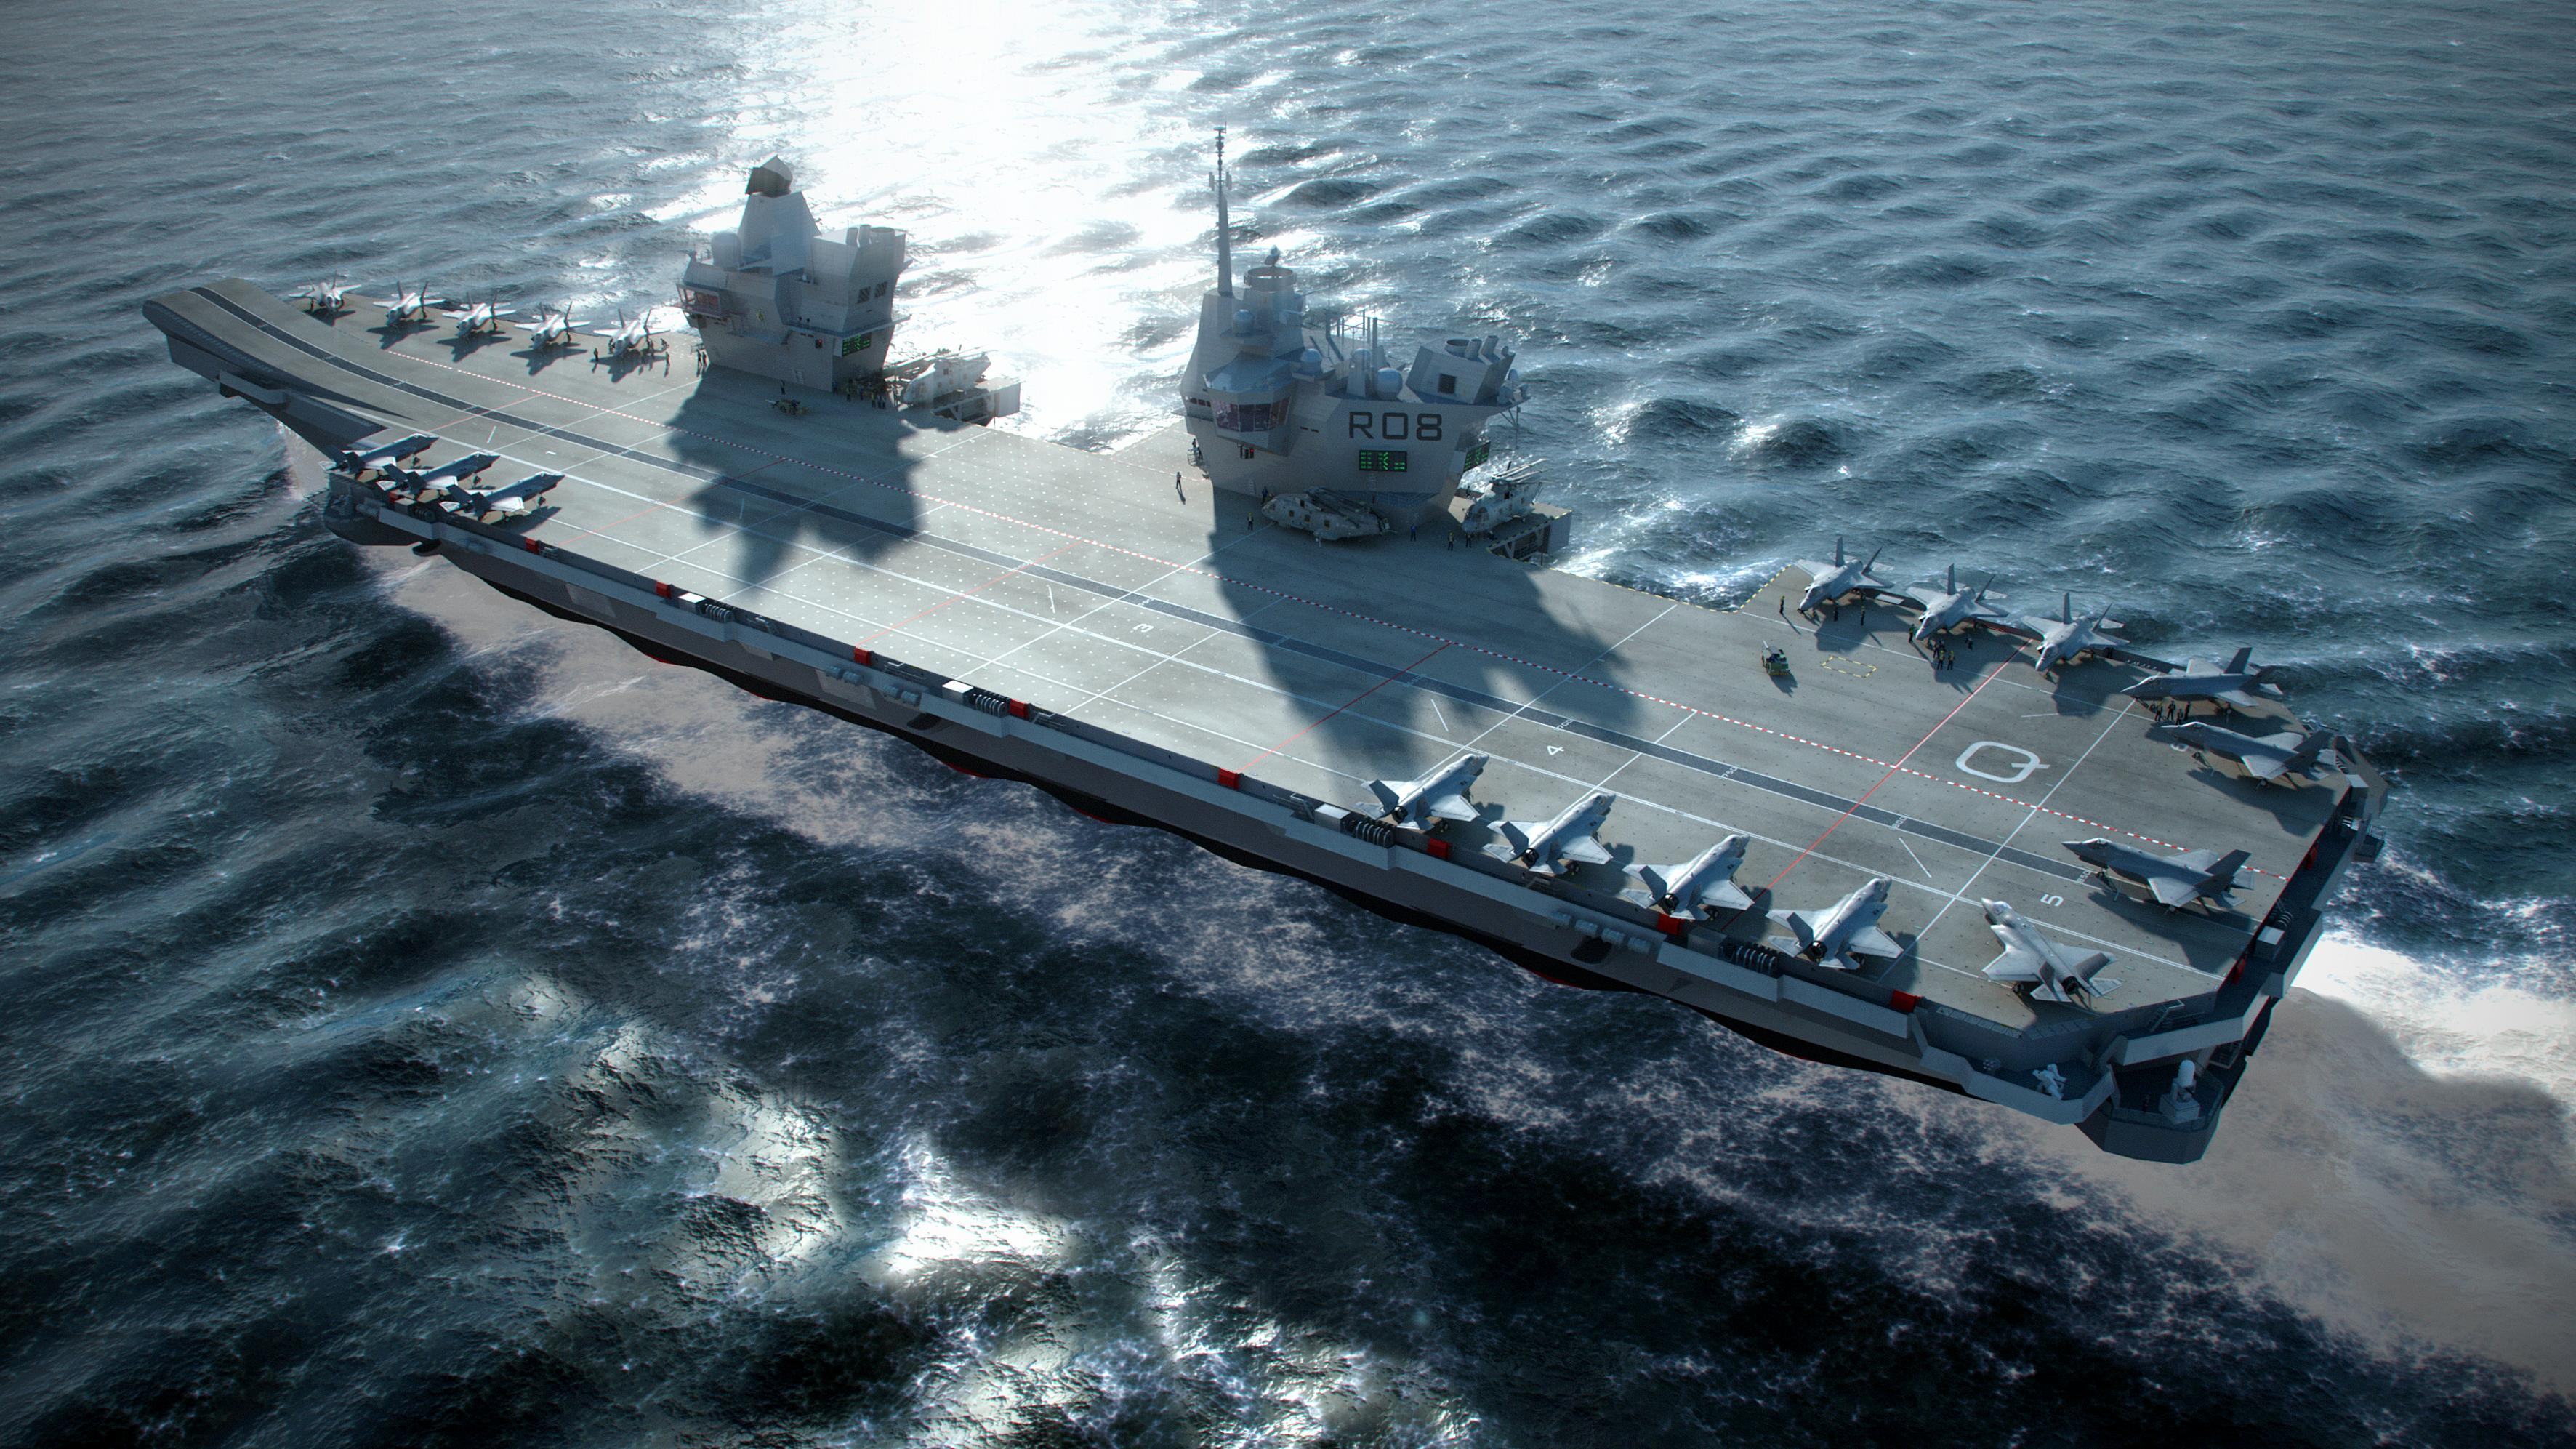 An artist's rendering of the future HMS Queen Elizabeth carrier. Royal Navy Image